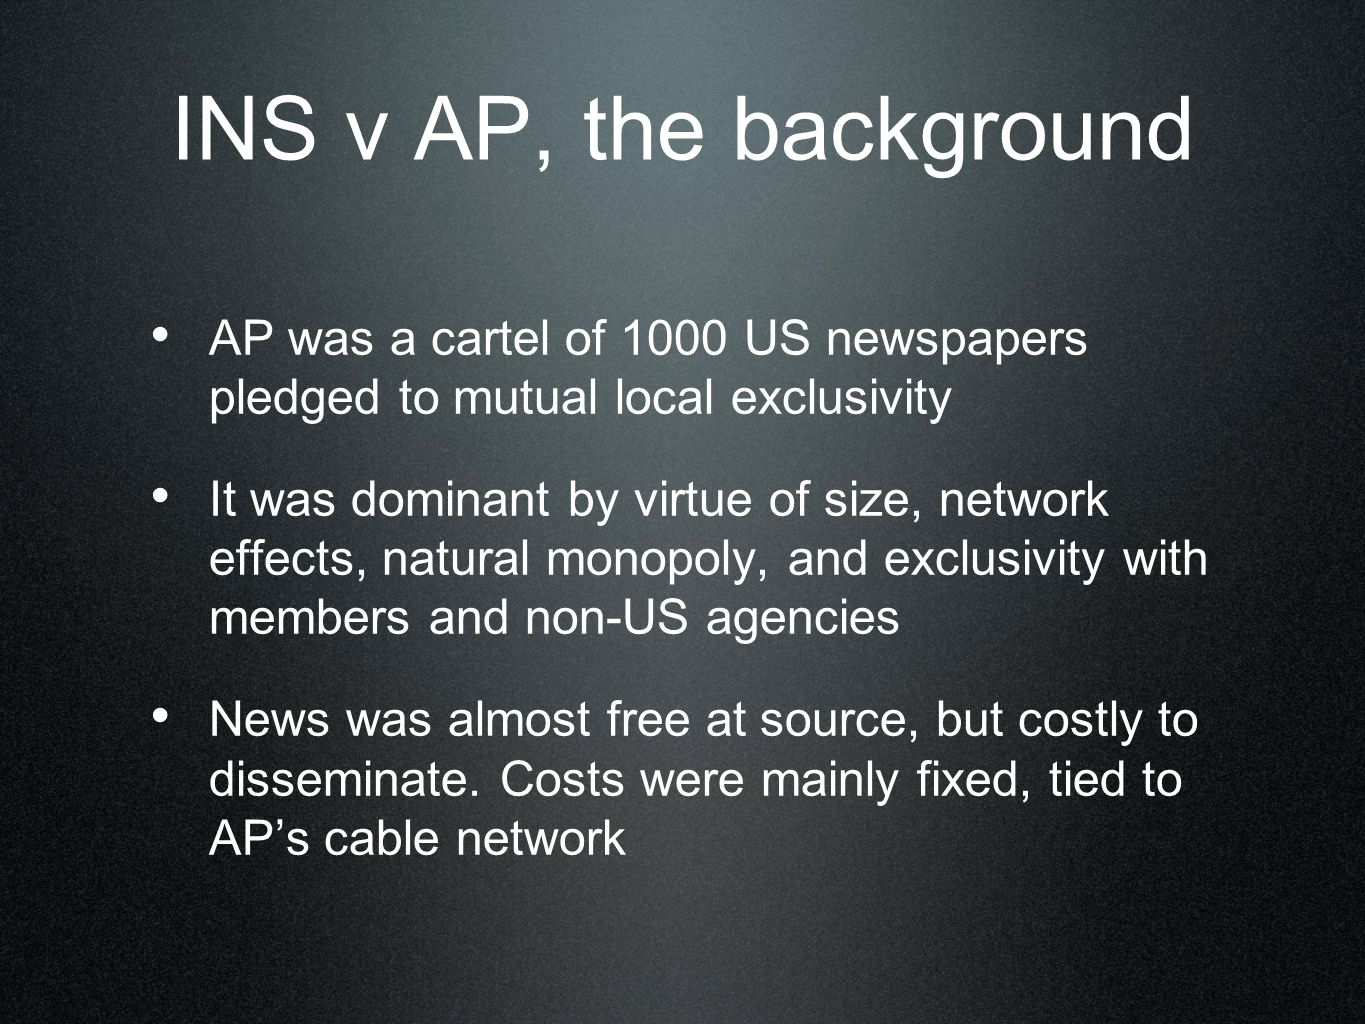 INS v AP, the background AP was a cartel of 1000 US newspapers pledged to mutual local exclusivity It was dominant by virtue of size, network effects, natural monopoly, and exclusivity with members and non-US agencies News was almost free at source, but costly to disseminate.